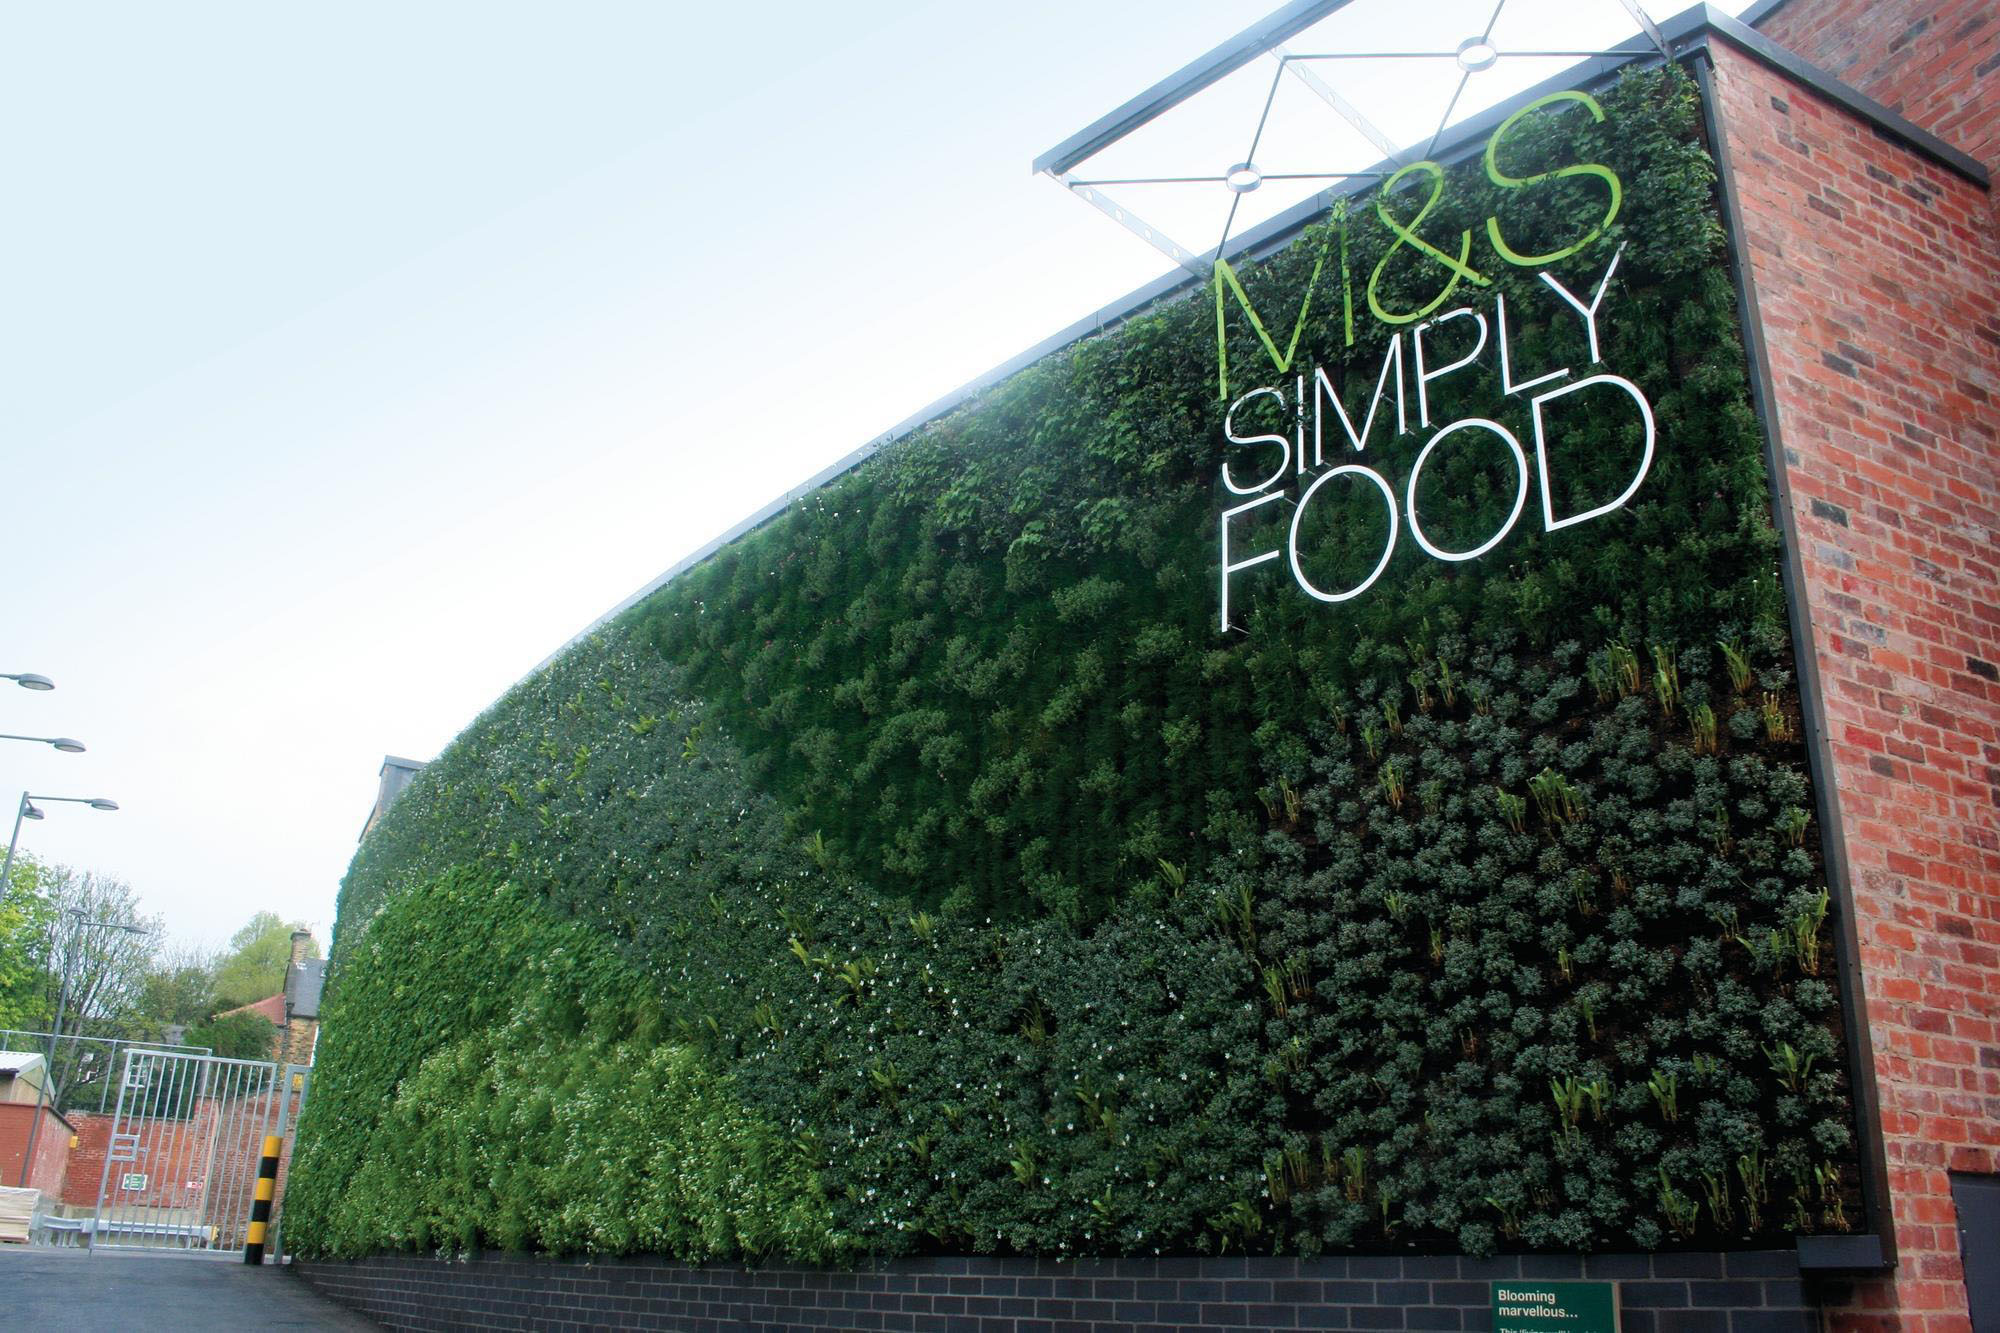 Plant wall on the outside of M&S Simply Food in England.